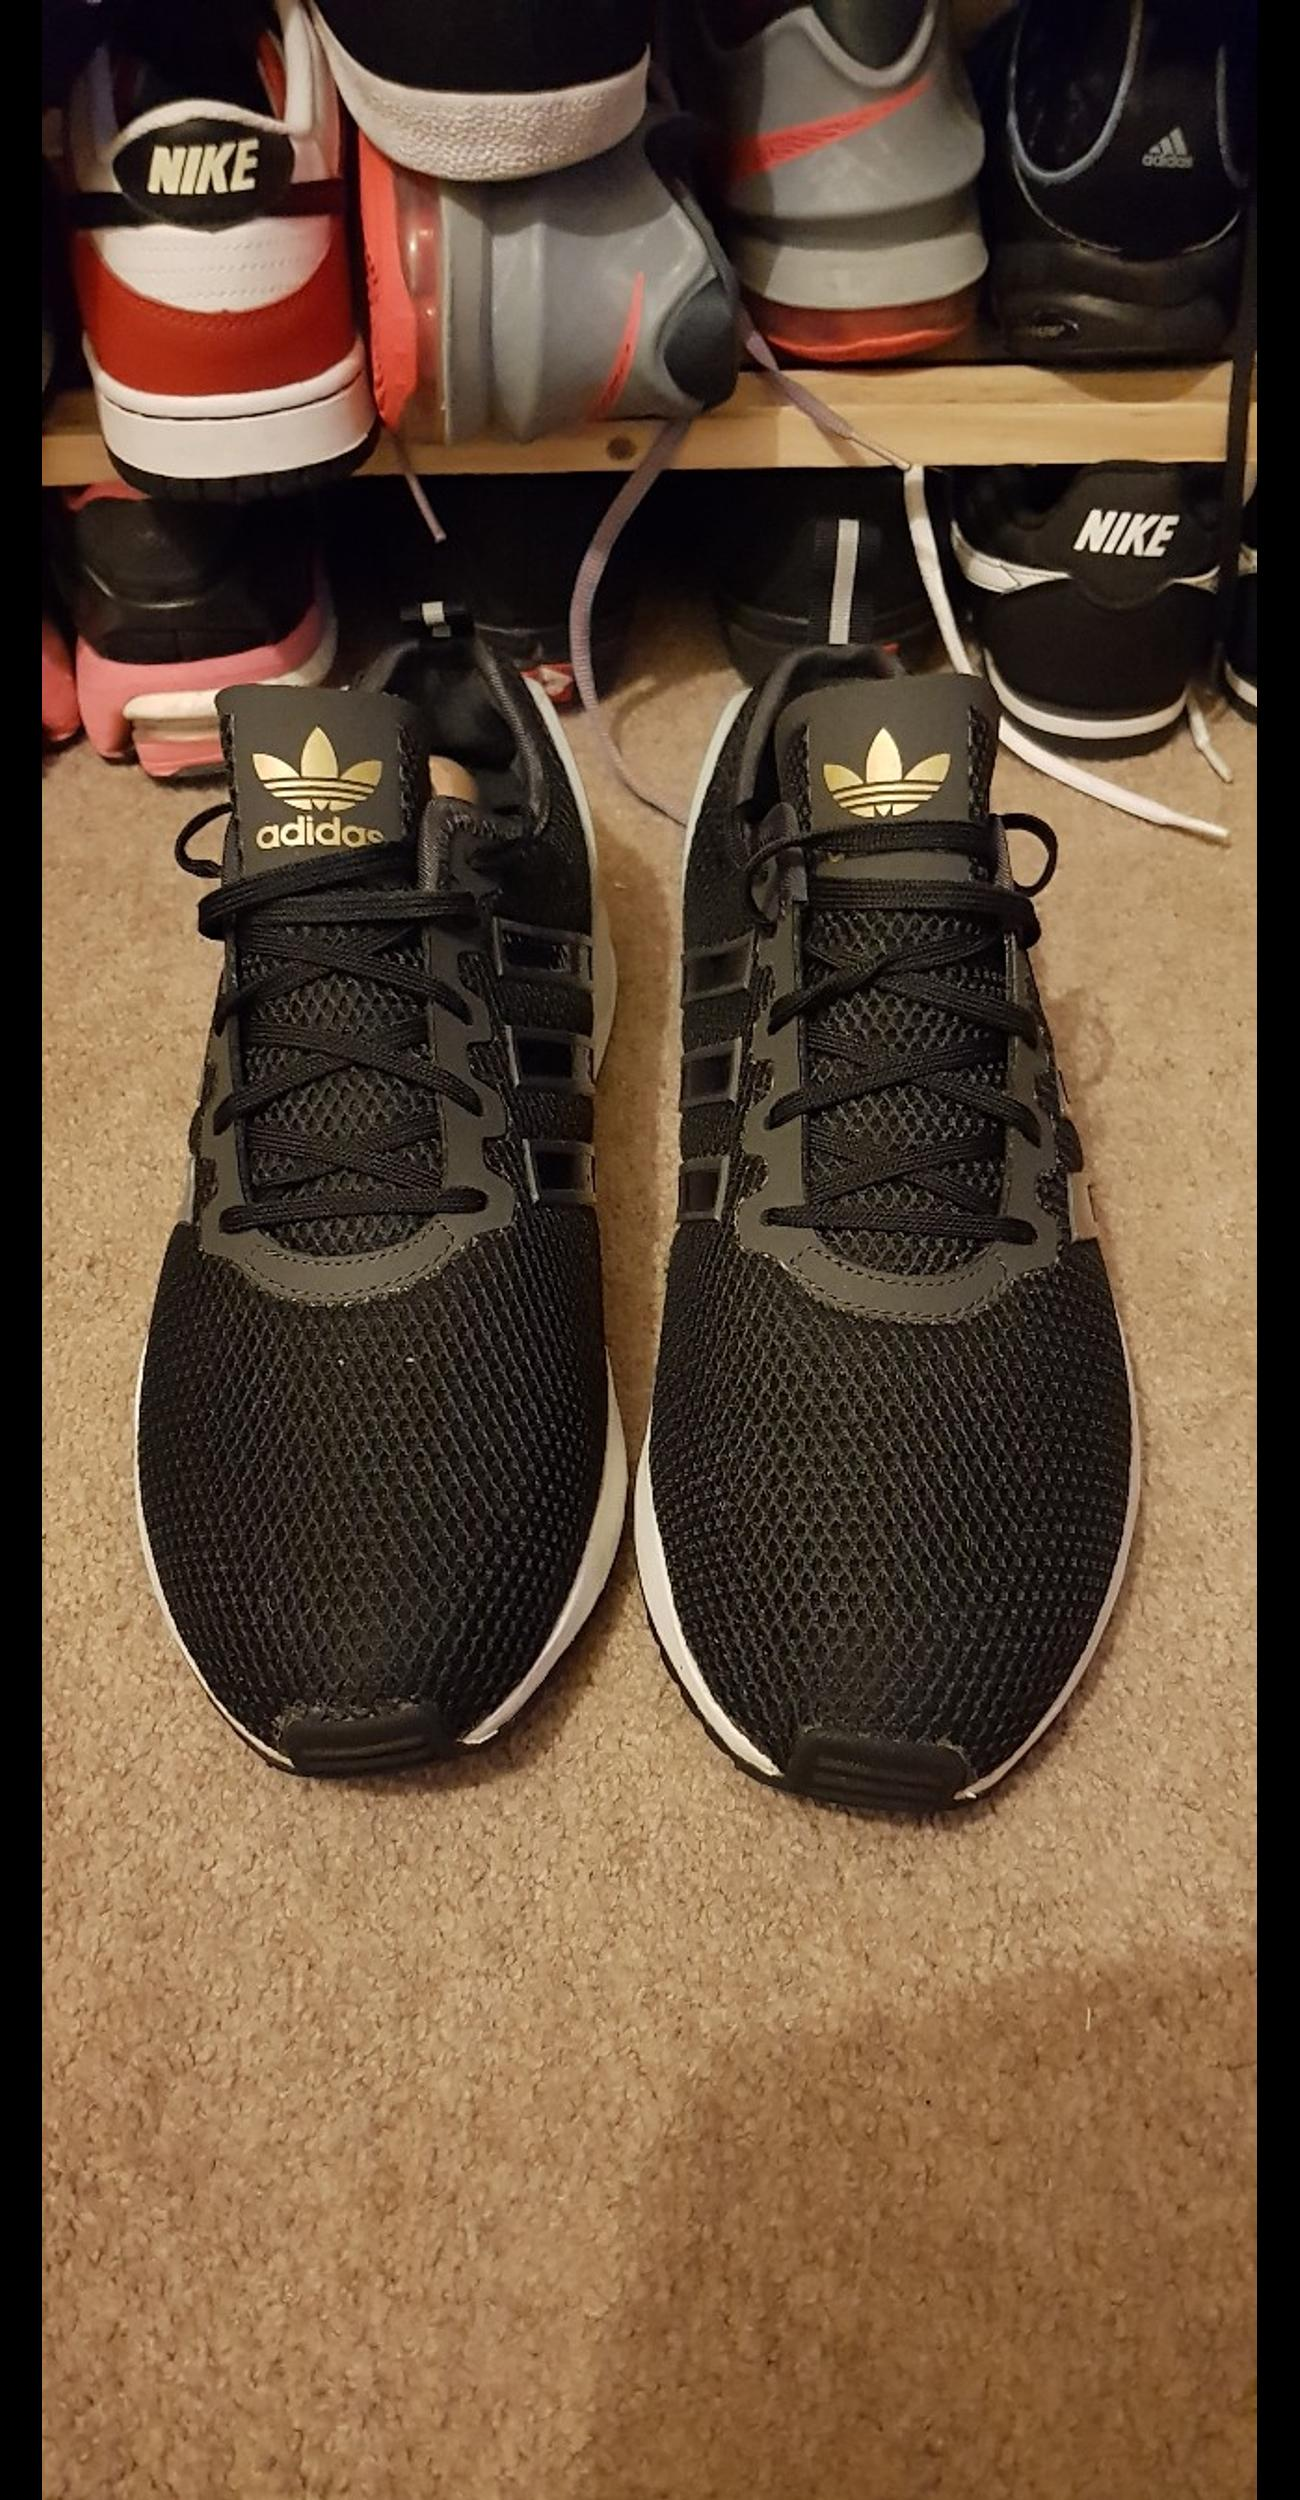 huge discount 4d01a 9e834 Adidas Zx Adv Black Low Sole Size 9.5 in NW4 Barnet for ...